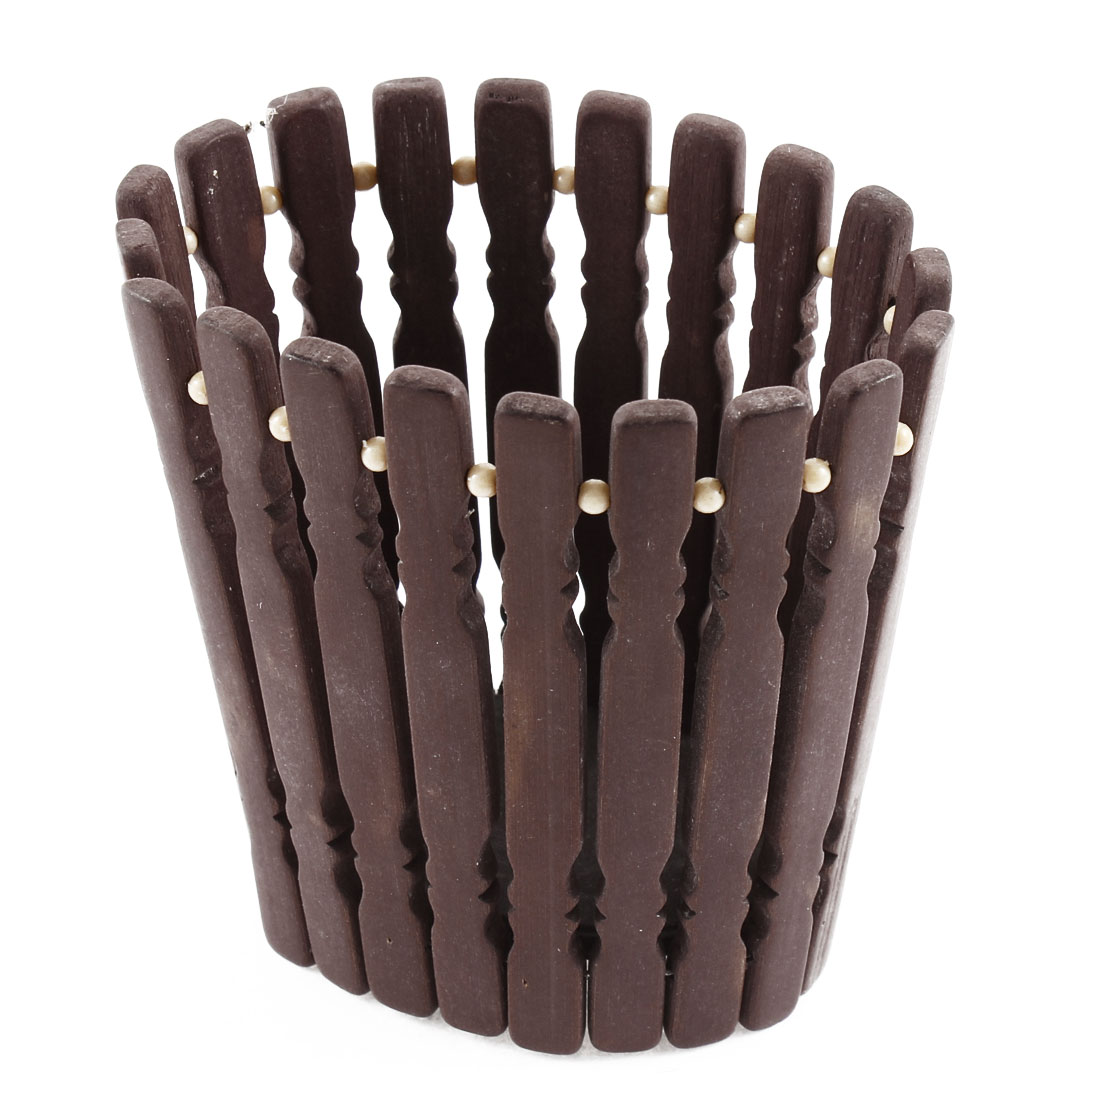 Home Beige Plastic Beads Decor Bamboo Pen Holder Chocolate Color